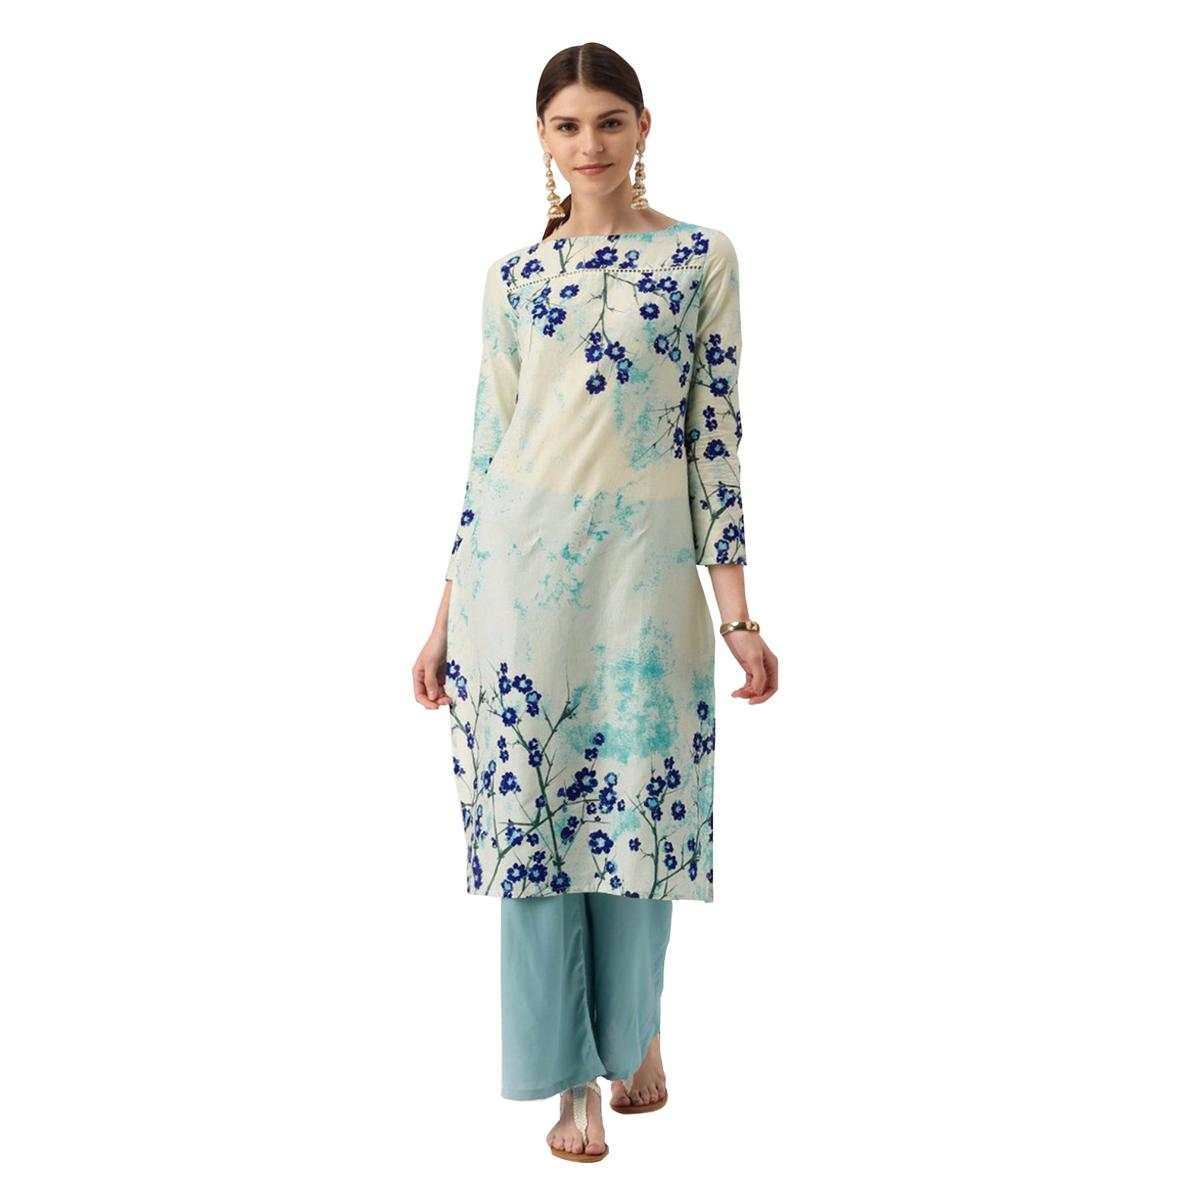 Off-White Floral Printed Casual Wear American Crape Kurti